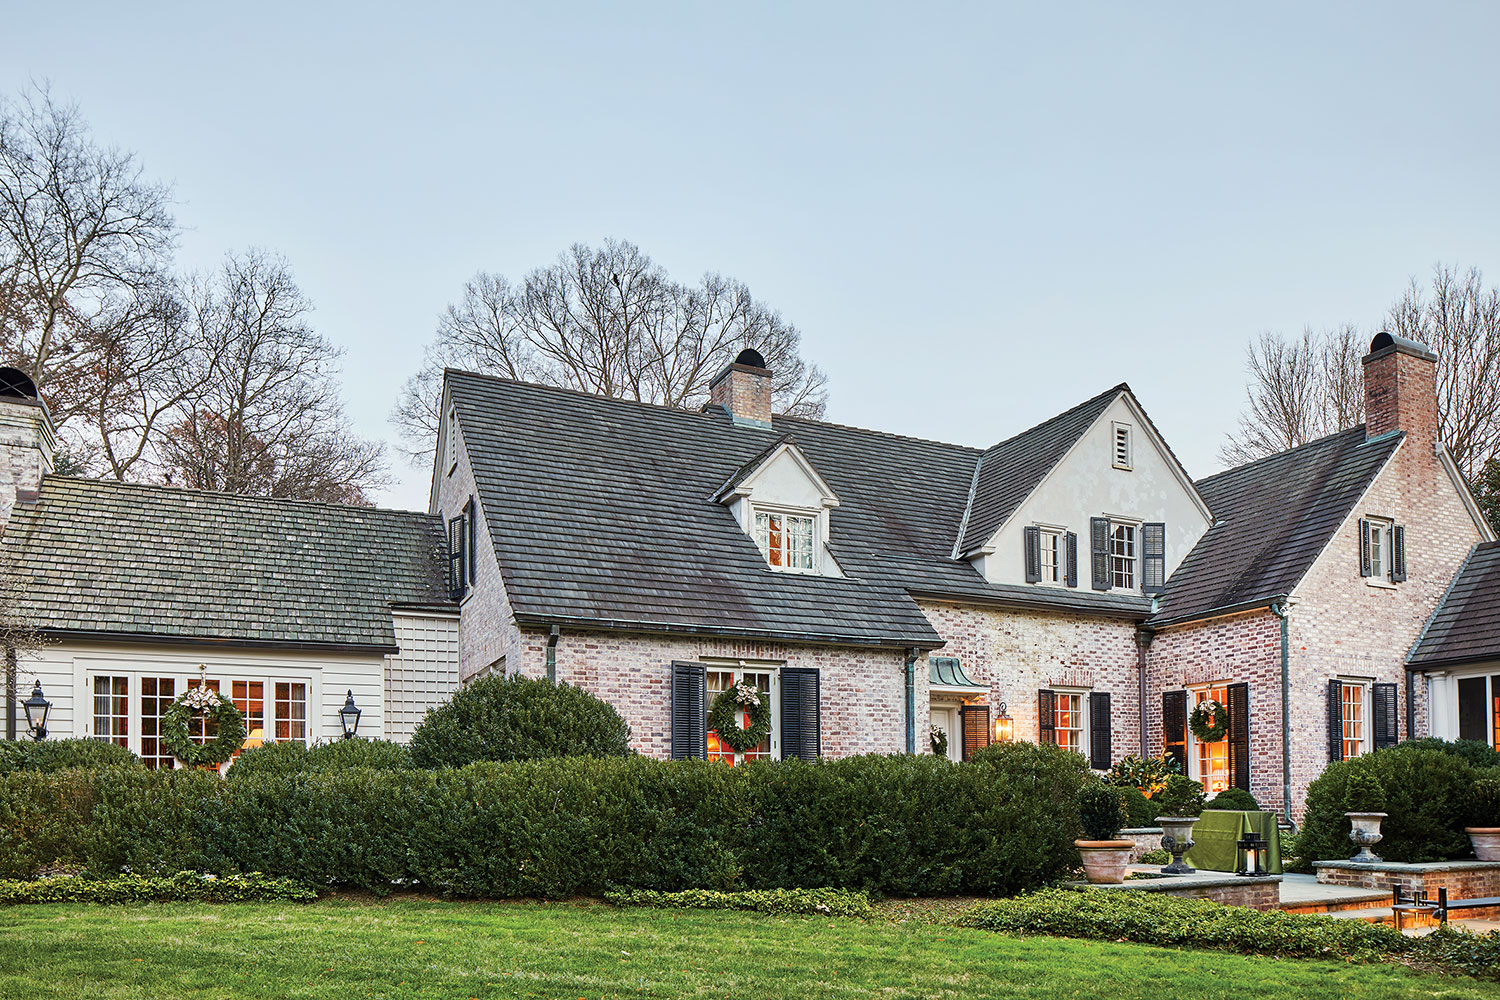 1920s Colonial-style cottage with limewashed brick exterior